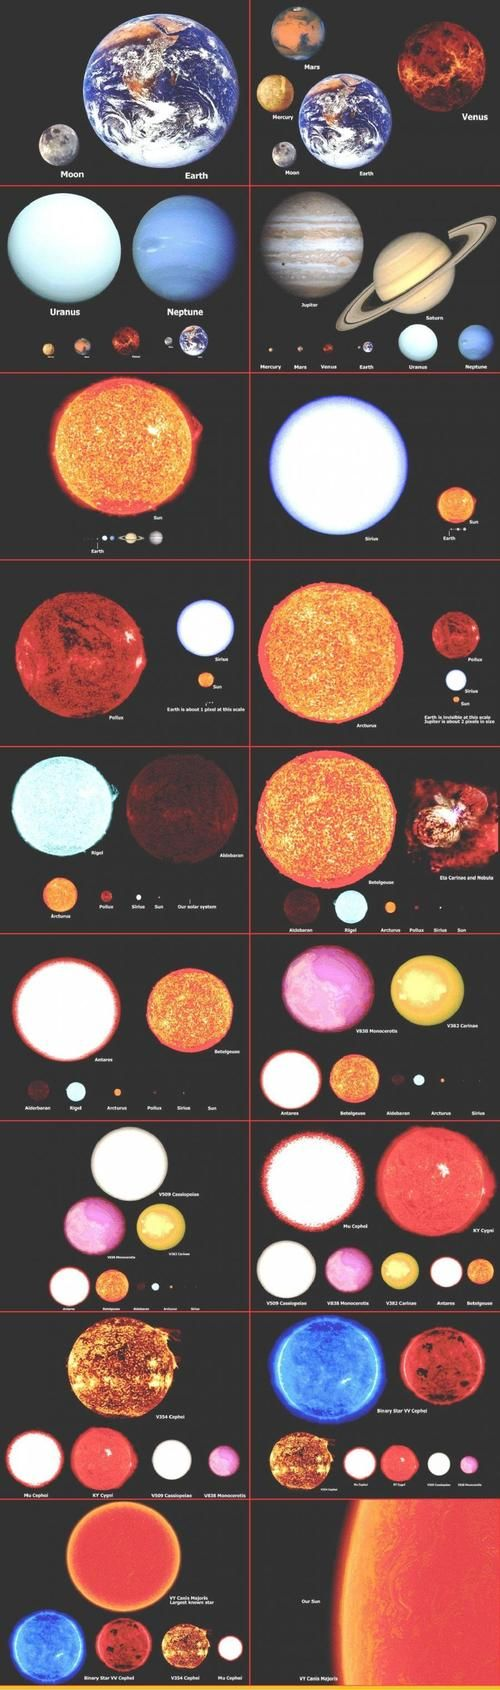 Actual size of the universe., page 1